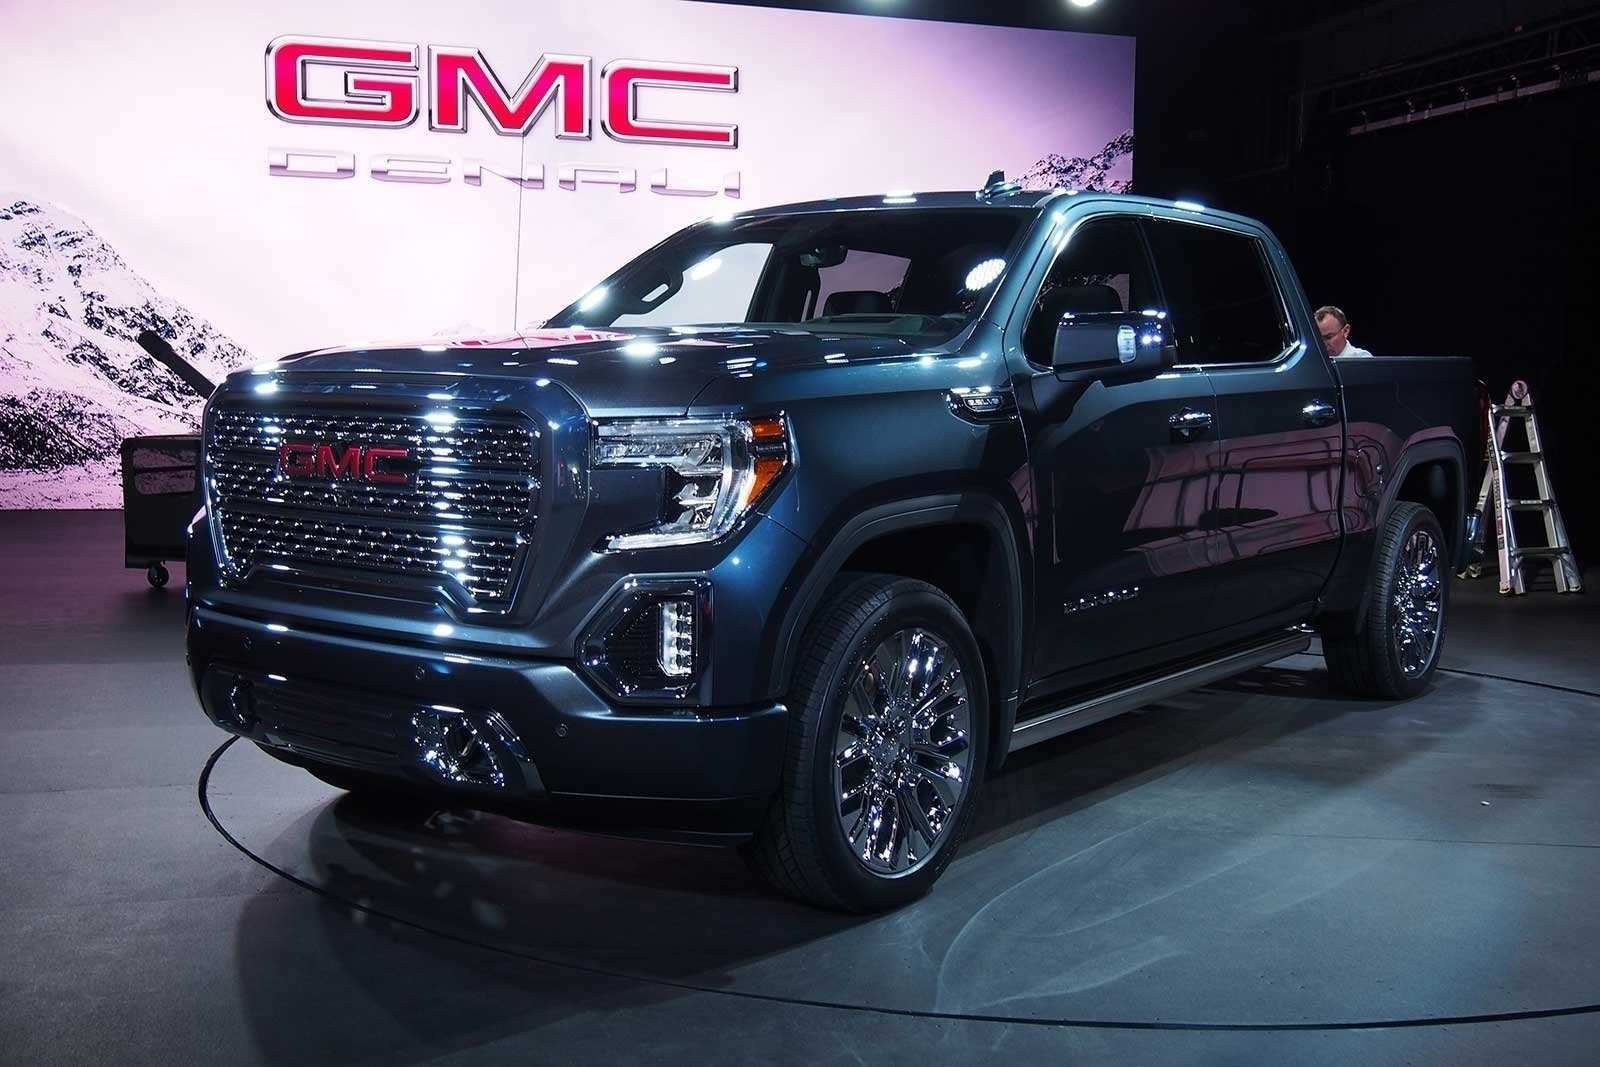 63 Gallery of 2019 Gmc Canyon Forum Concept Redesign And Review Price for 2019 Gmc Canyon Forum Concept Redesign And Review